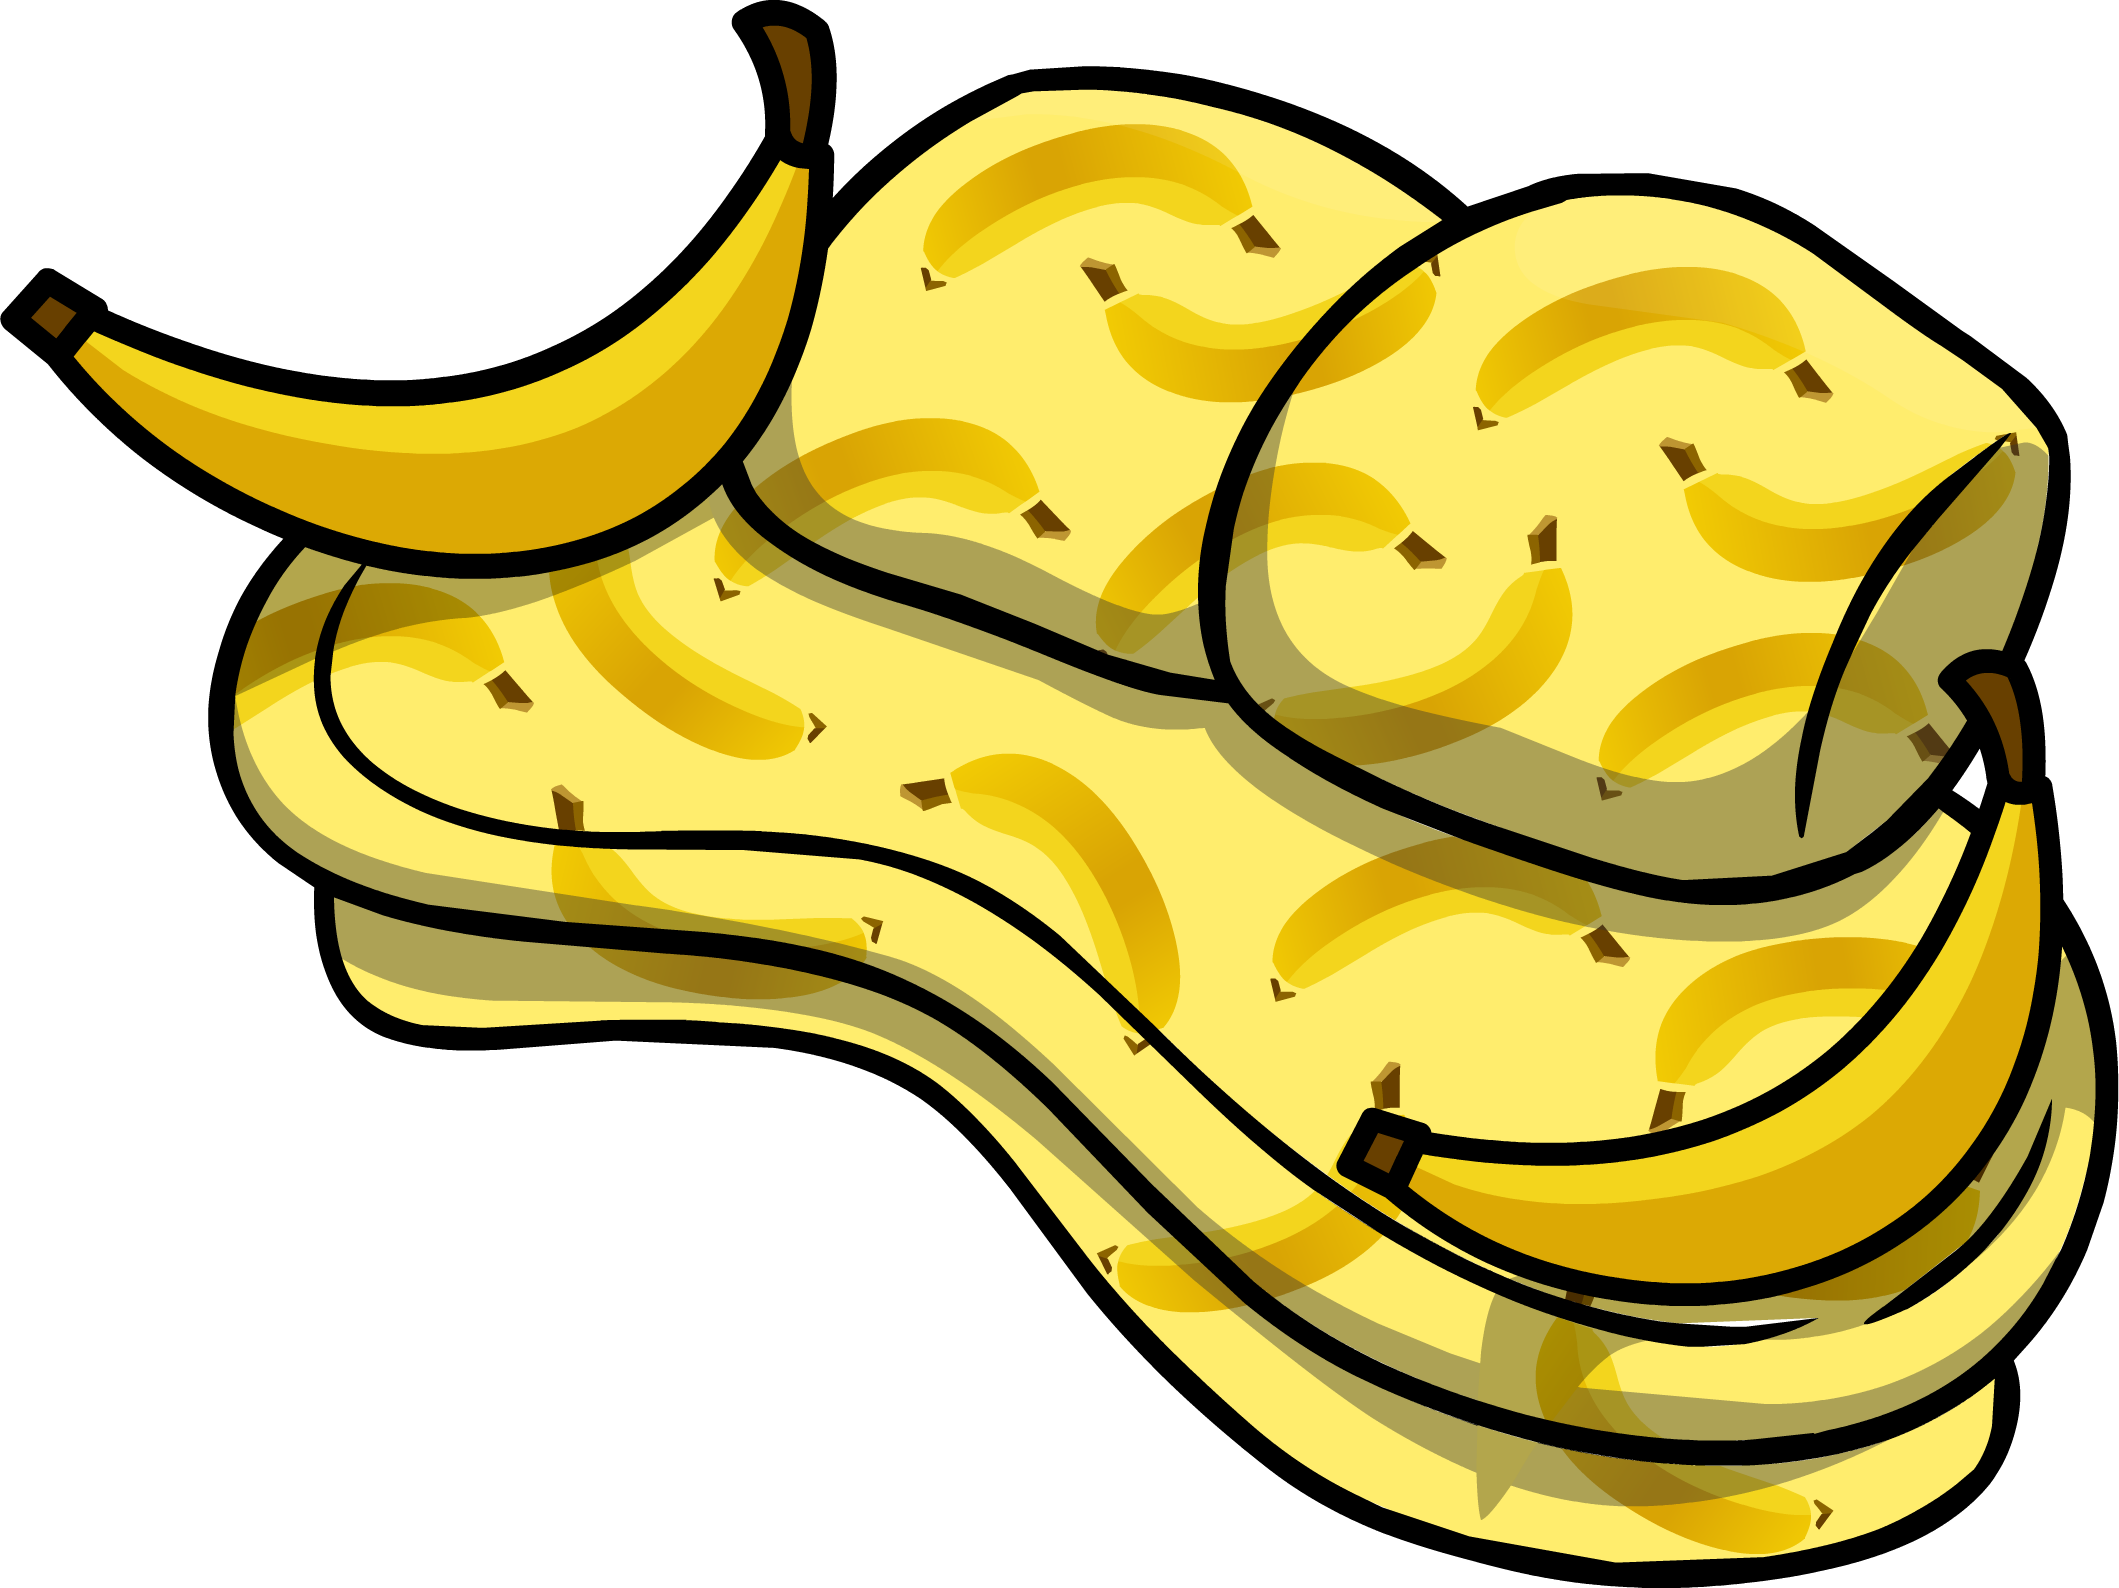 Image banana furniture icon. Couch clipart messy